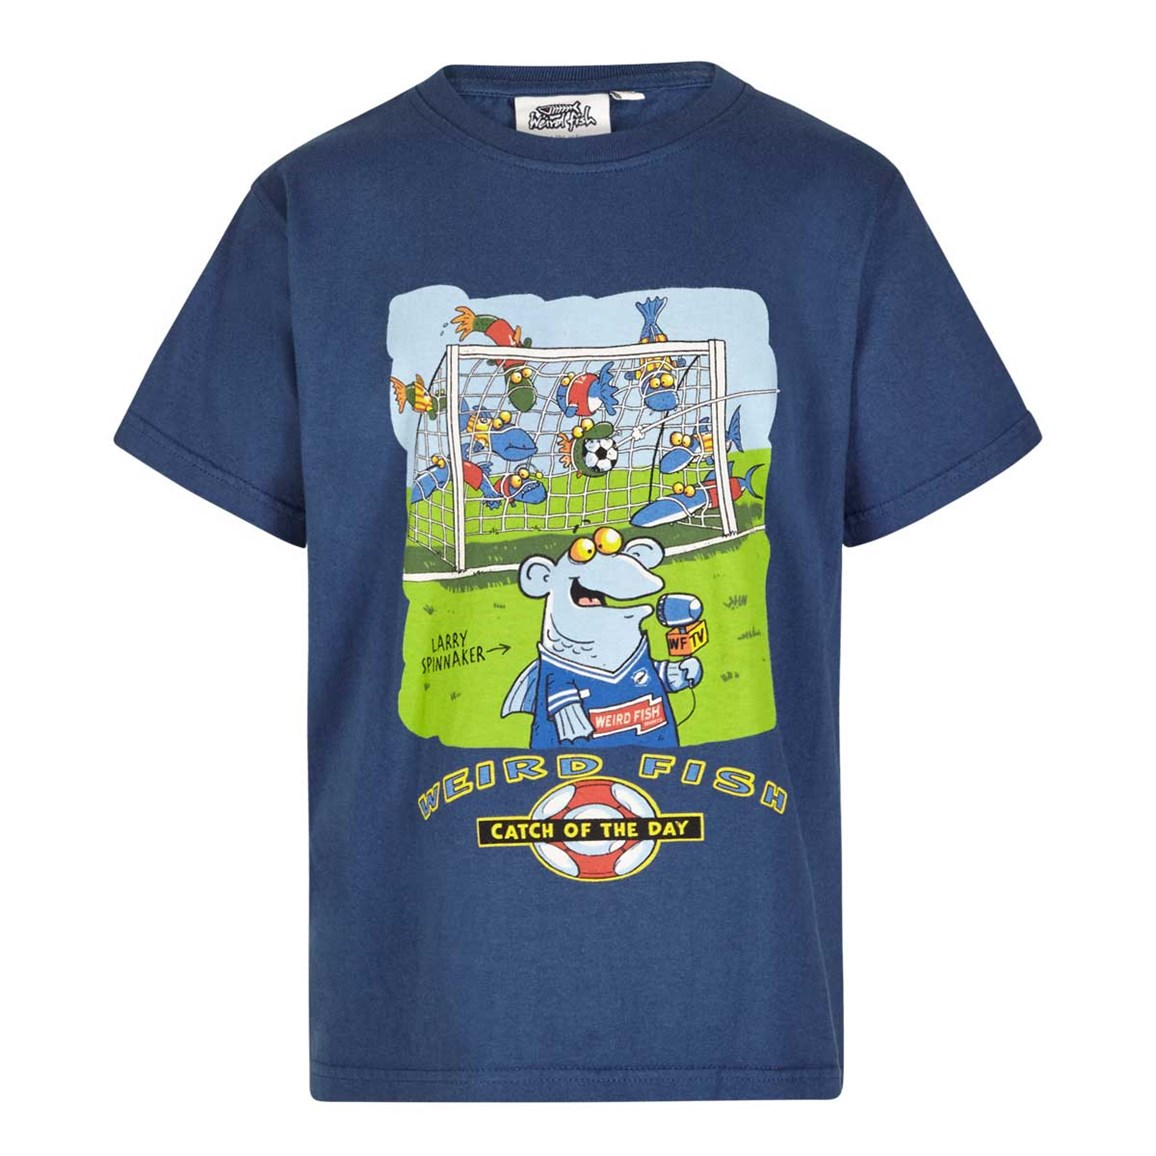 Image of Weird Fish Catch Of The Day Boy's Artist T-Shirt Ensign Blue Size 7-8